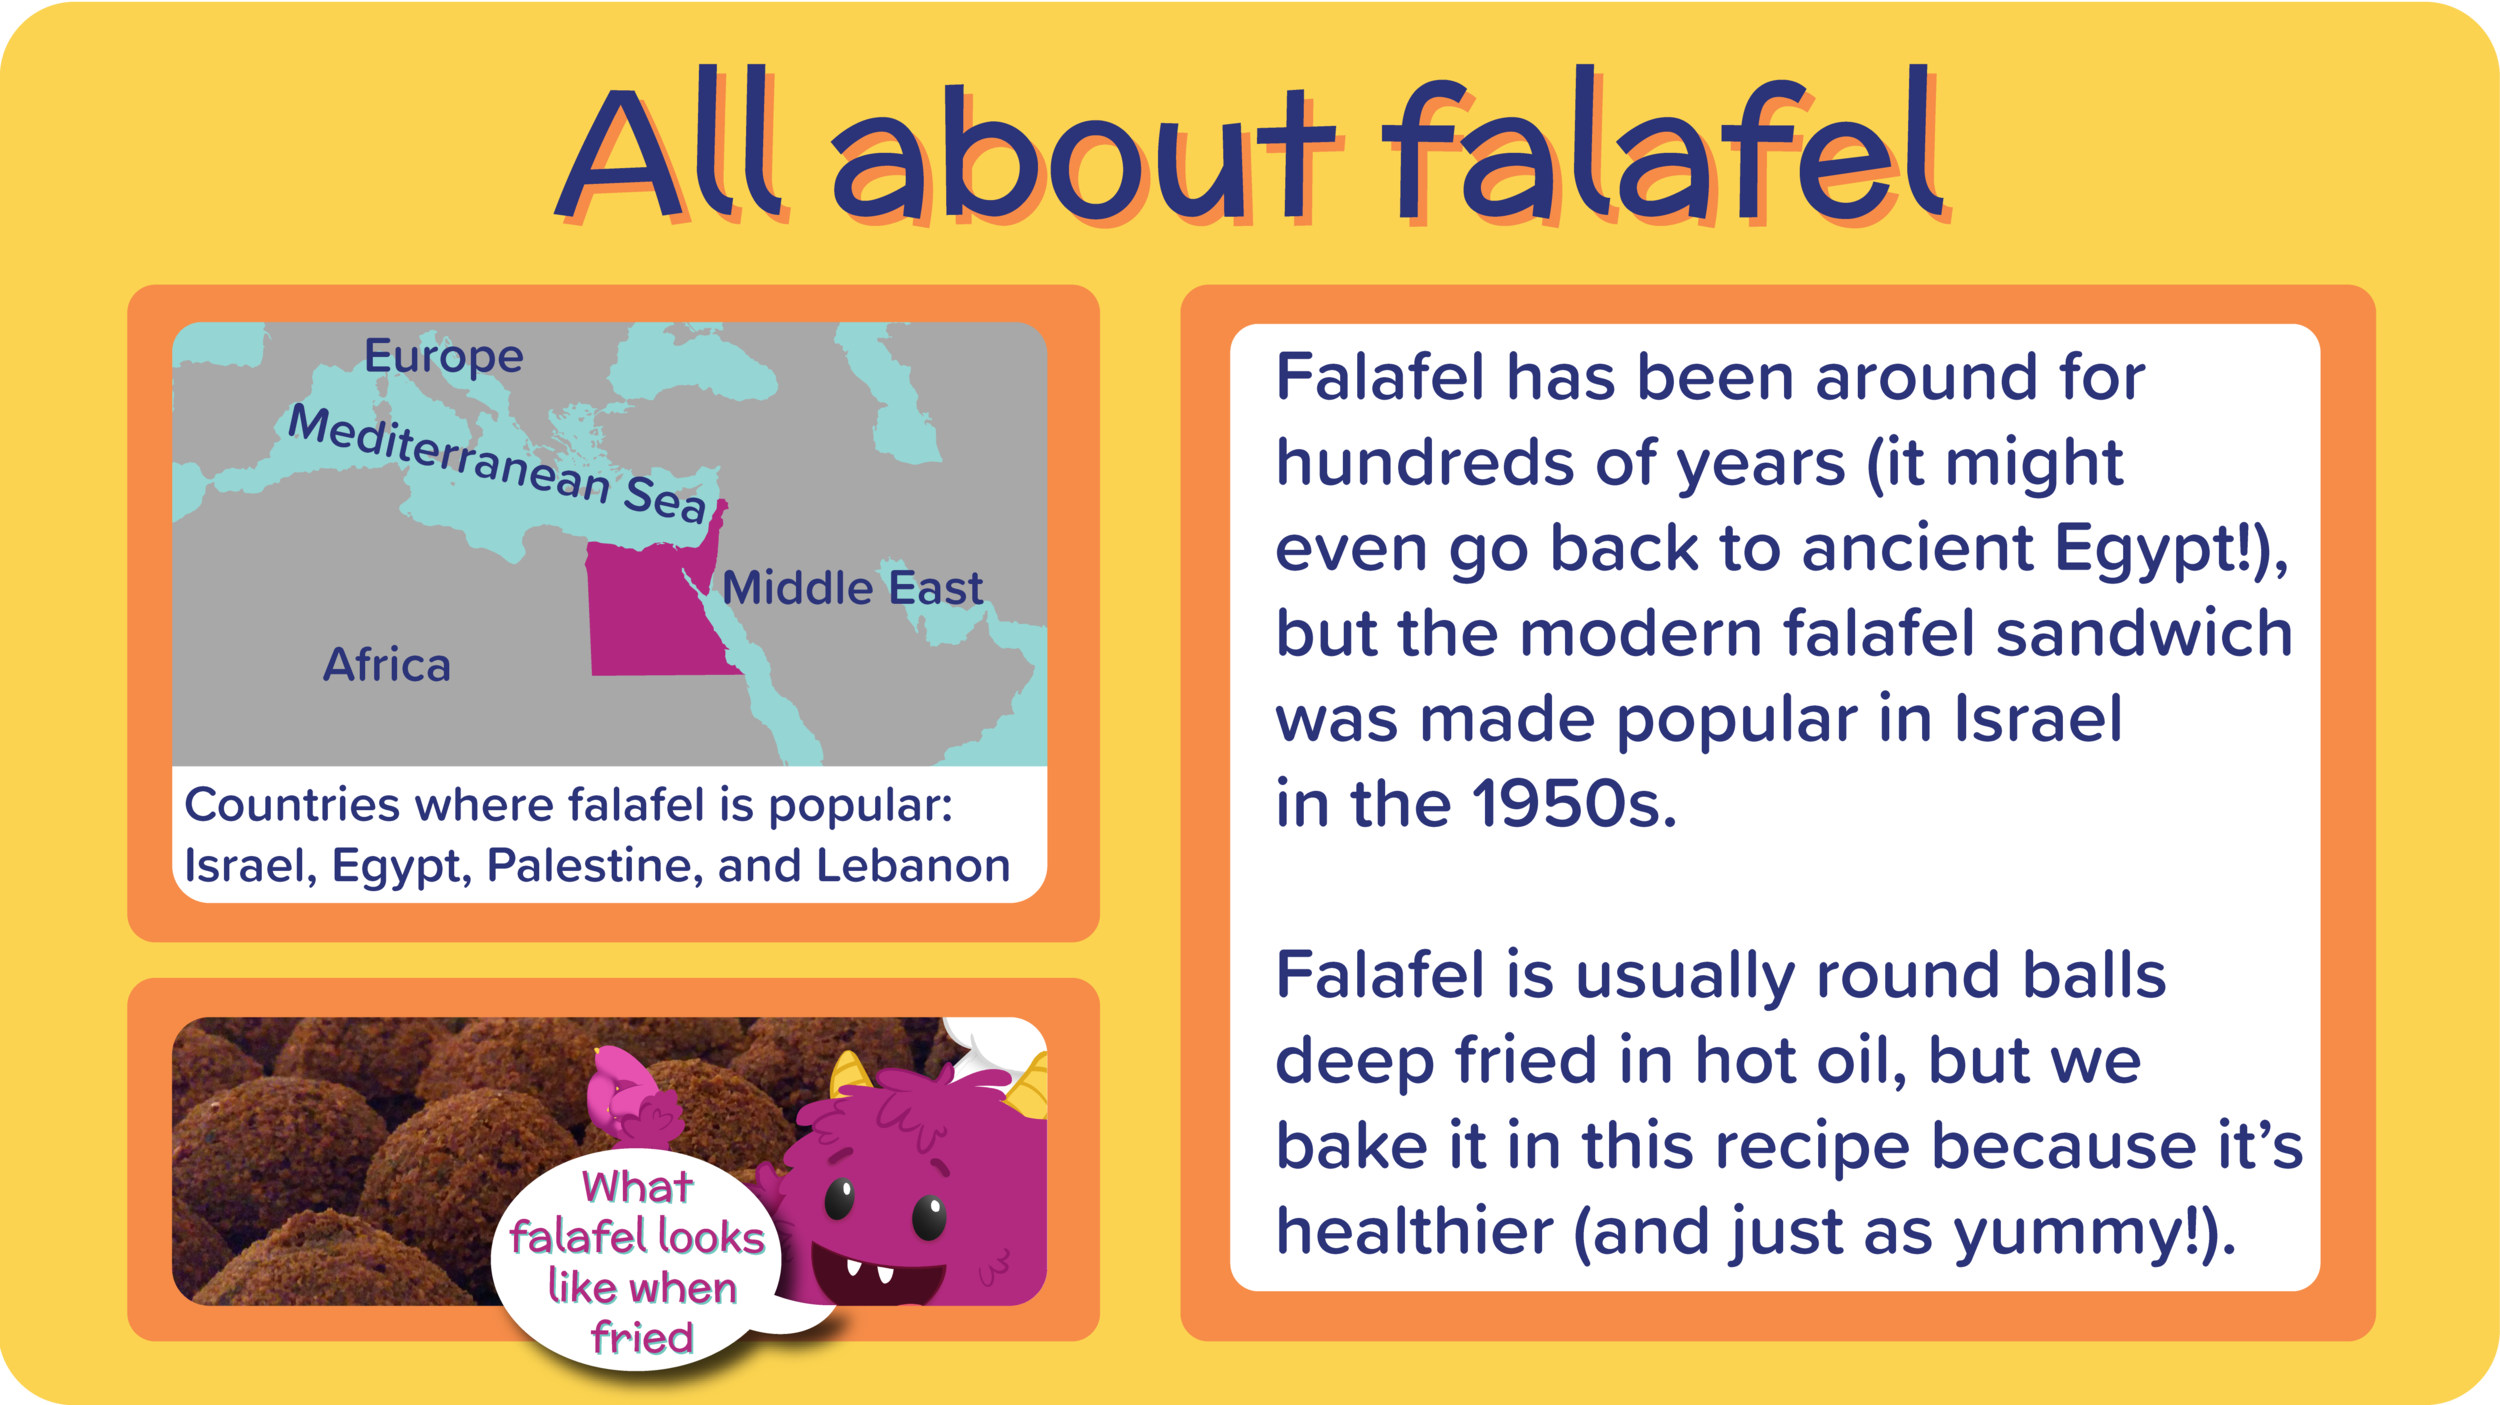 11_FalafelPocketsZingyTzatziki_all about falafel-01.png